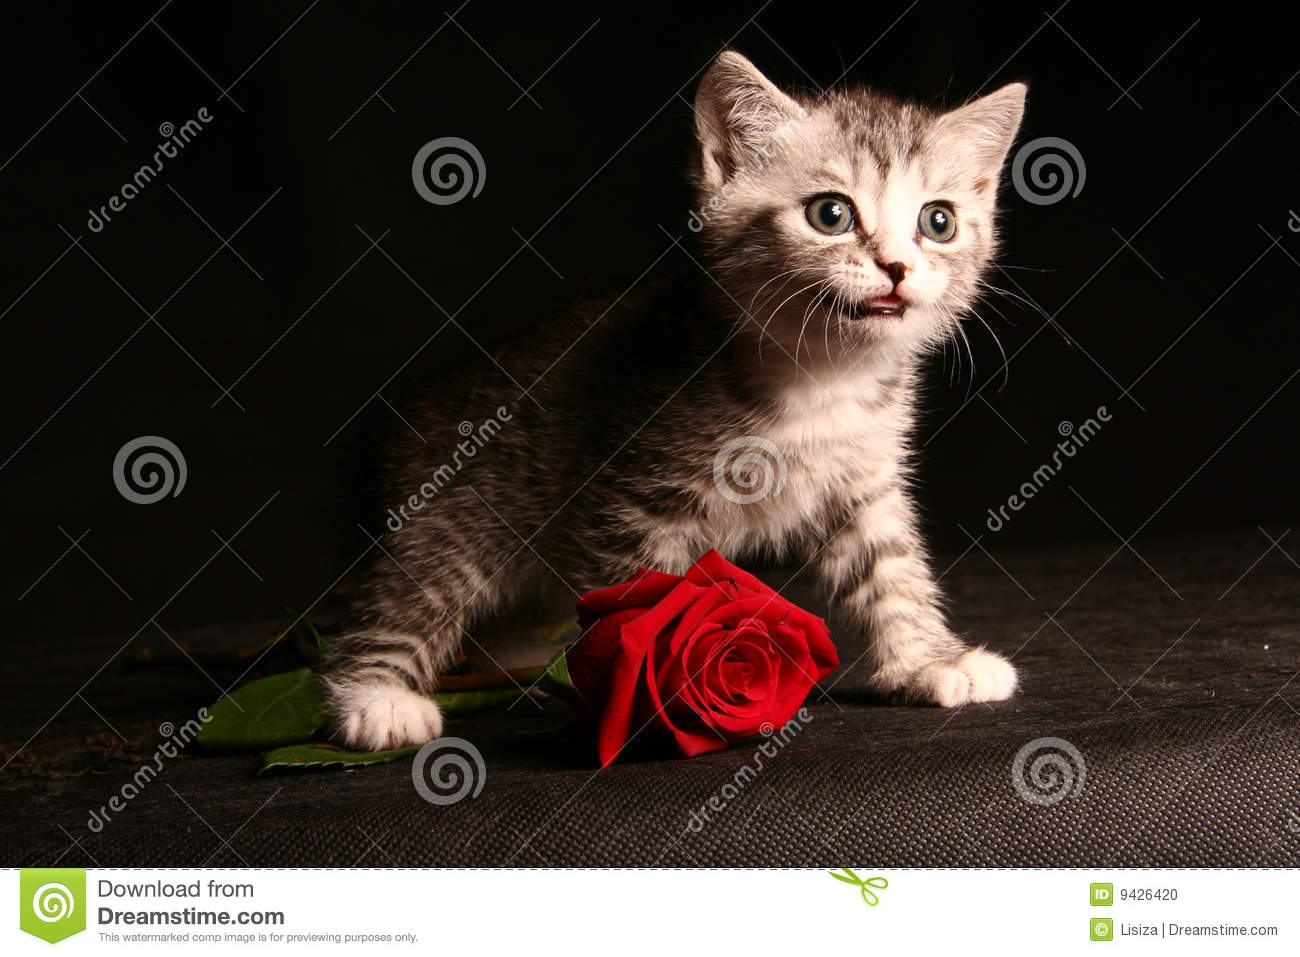 Cute Cat Picture Wallpaper Hd Little Cat With Red Rose Stock Photo Image 9426420